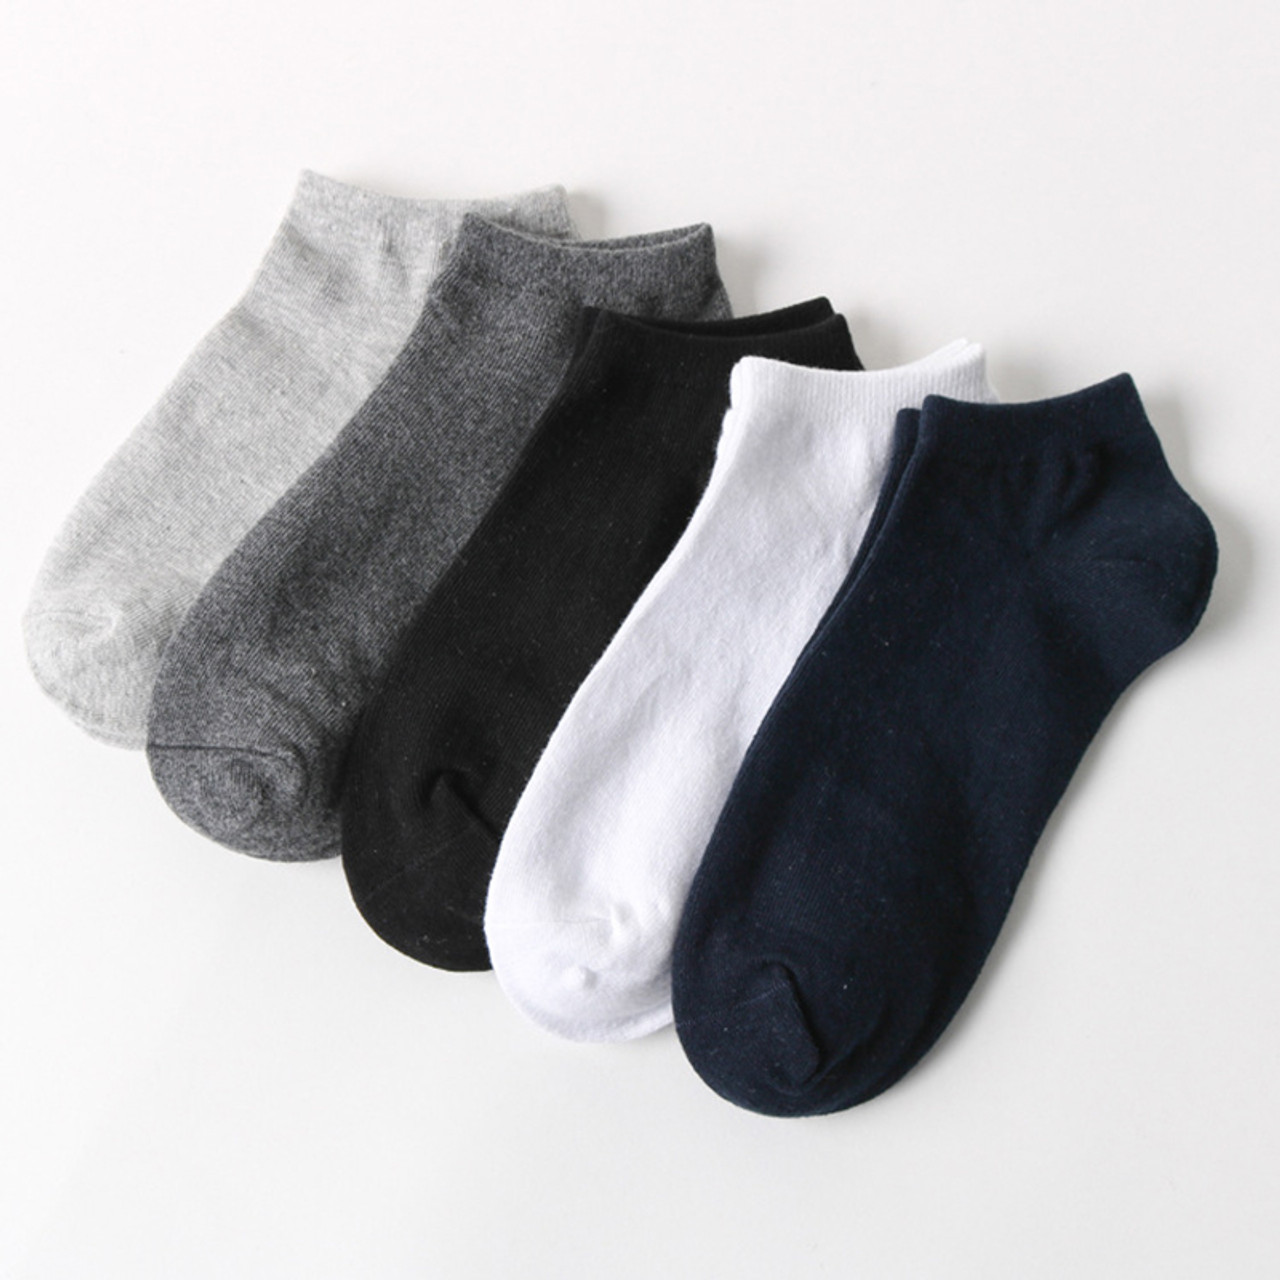 f892ce2e51795 5pairs/lot Spring summer men cotton ankle Socks for men's business casual  solid colors short ...